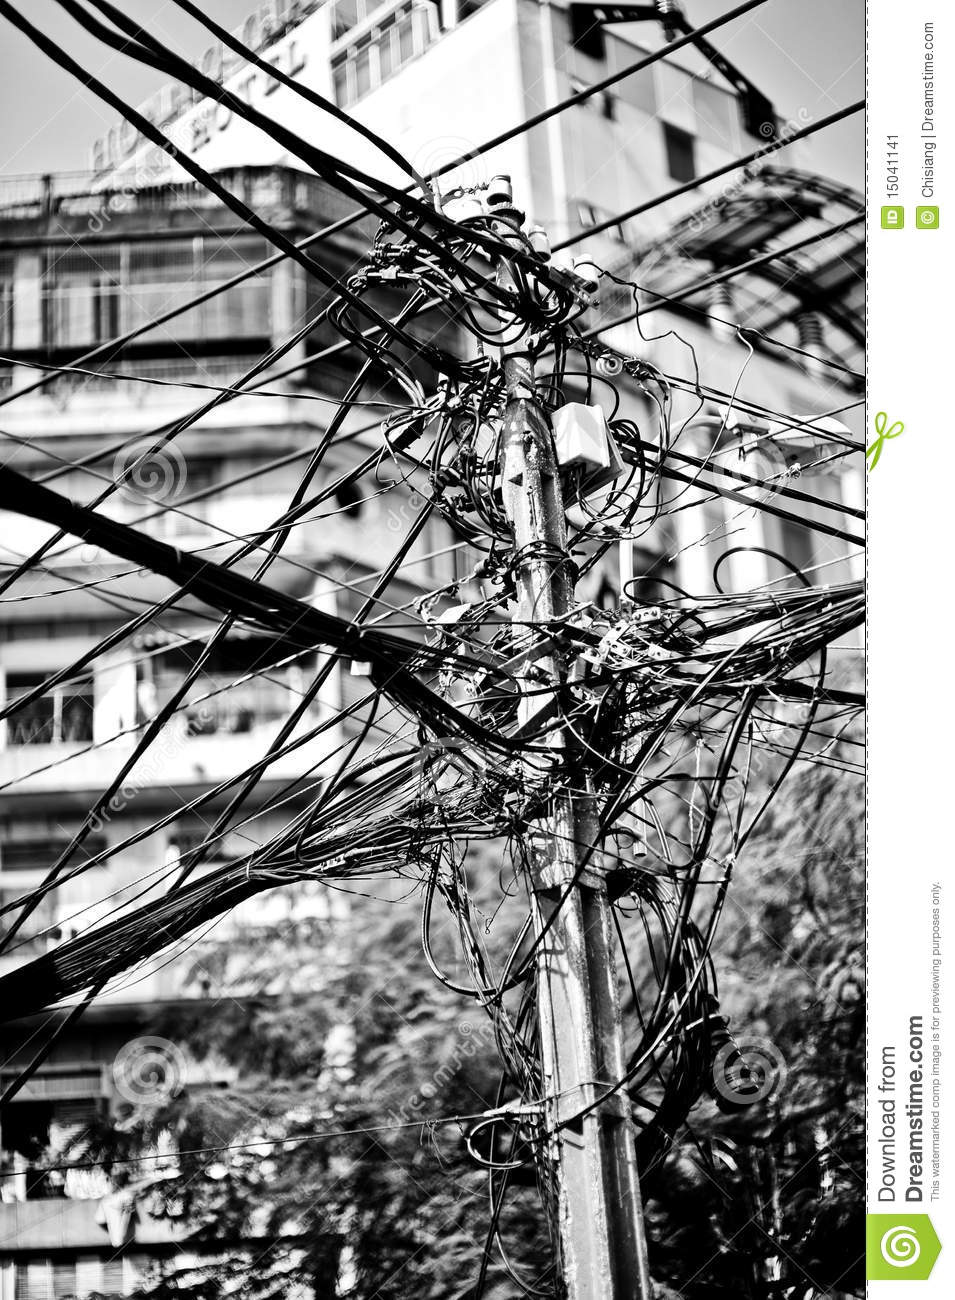 medium resolution of messy telephone cables